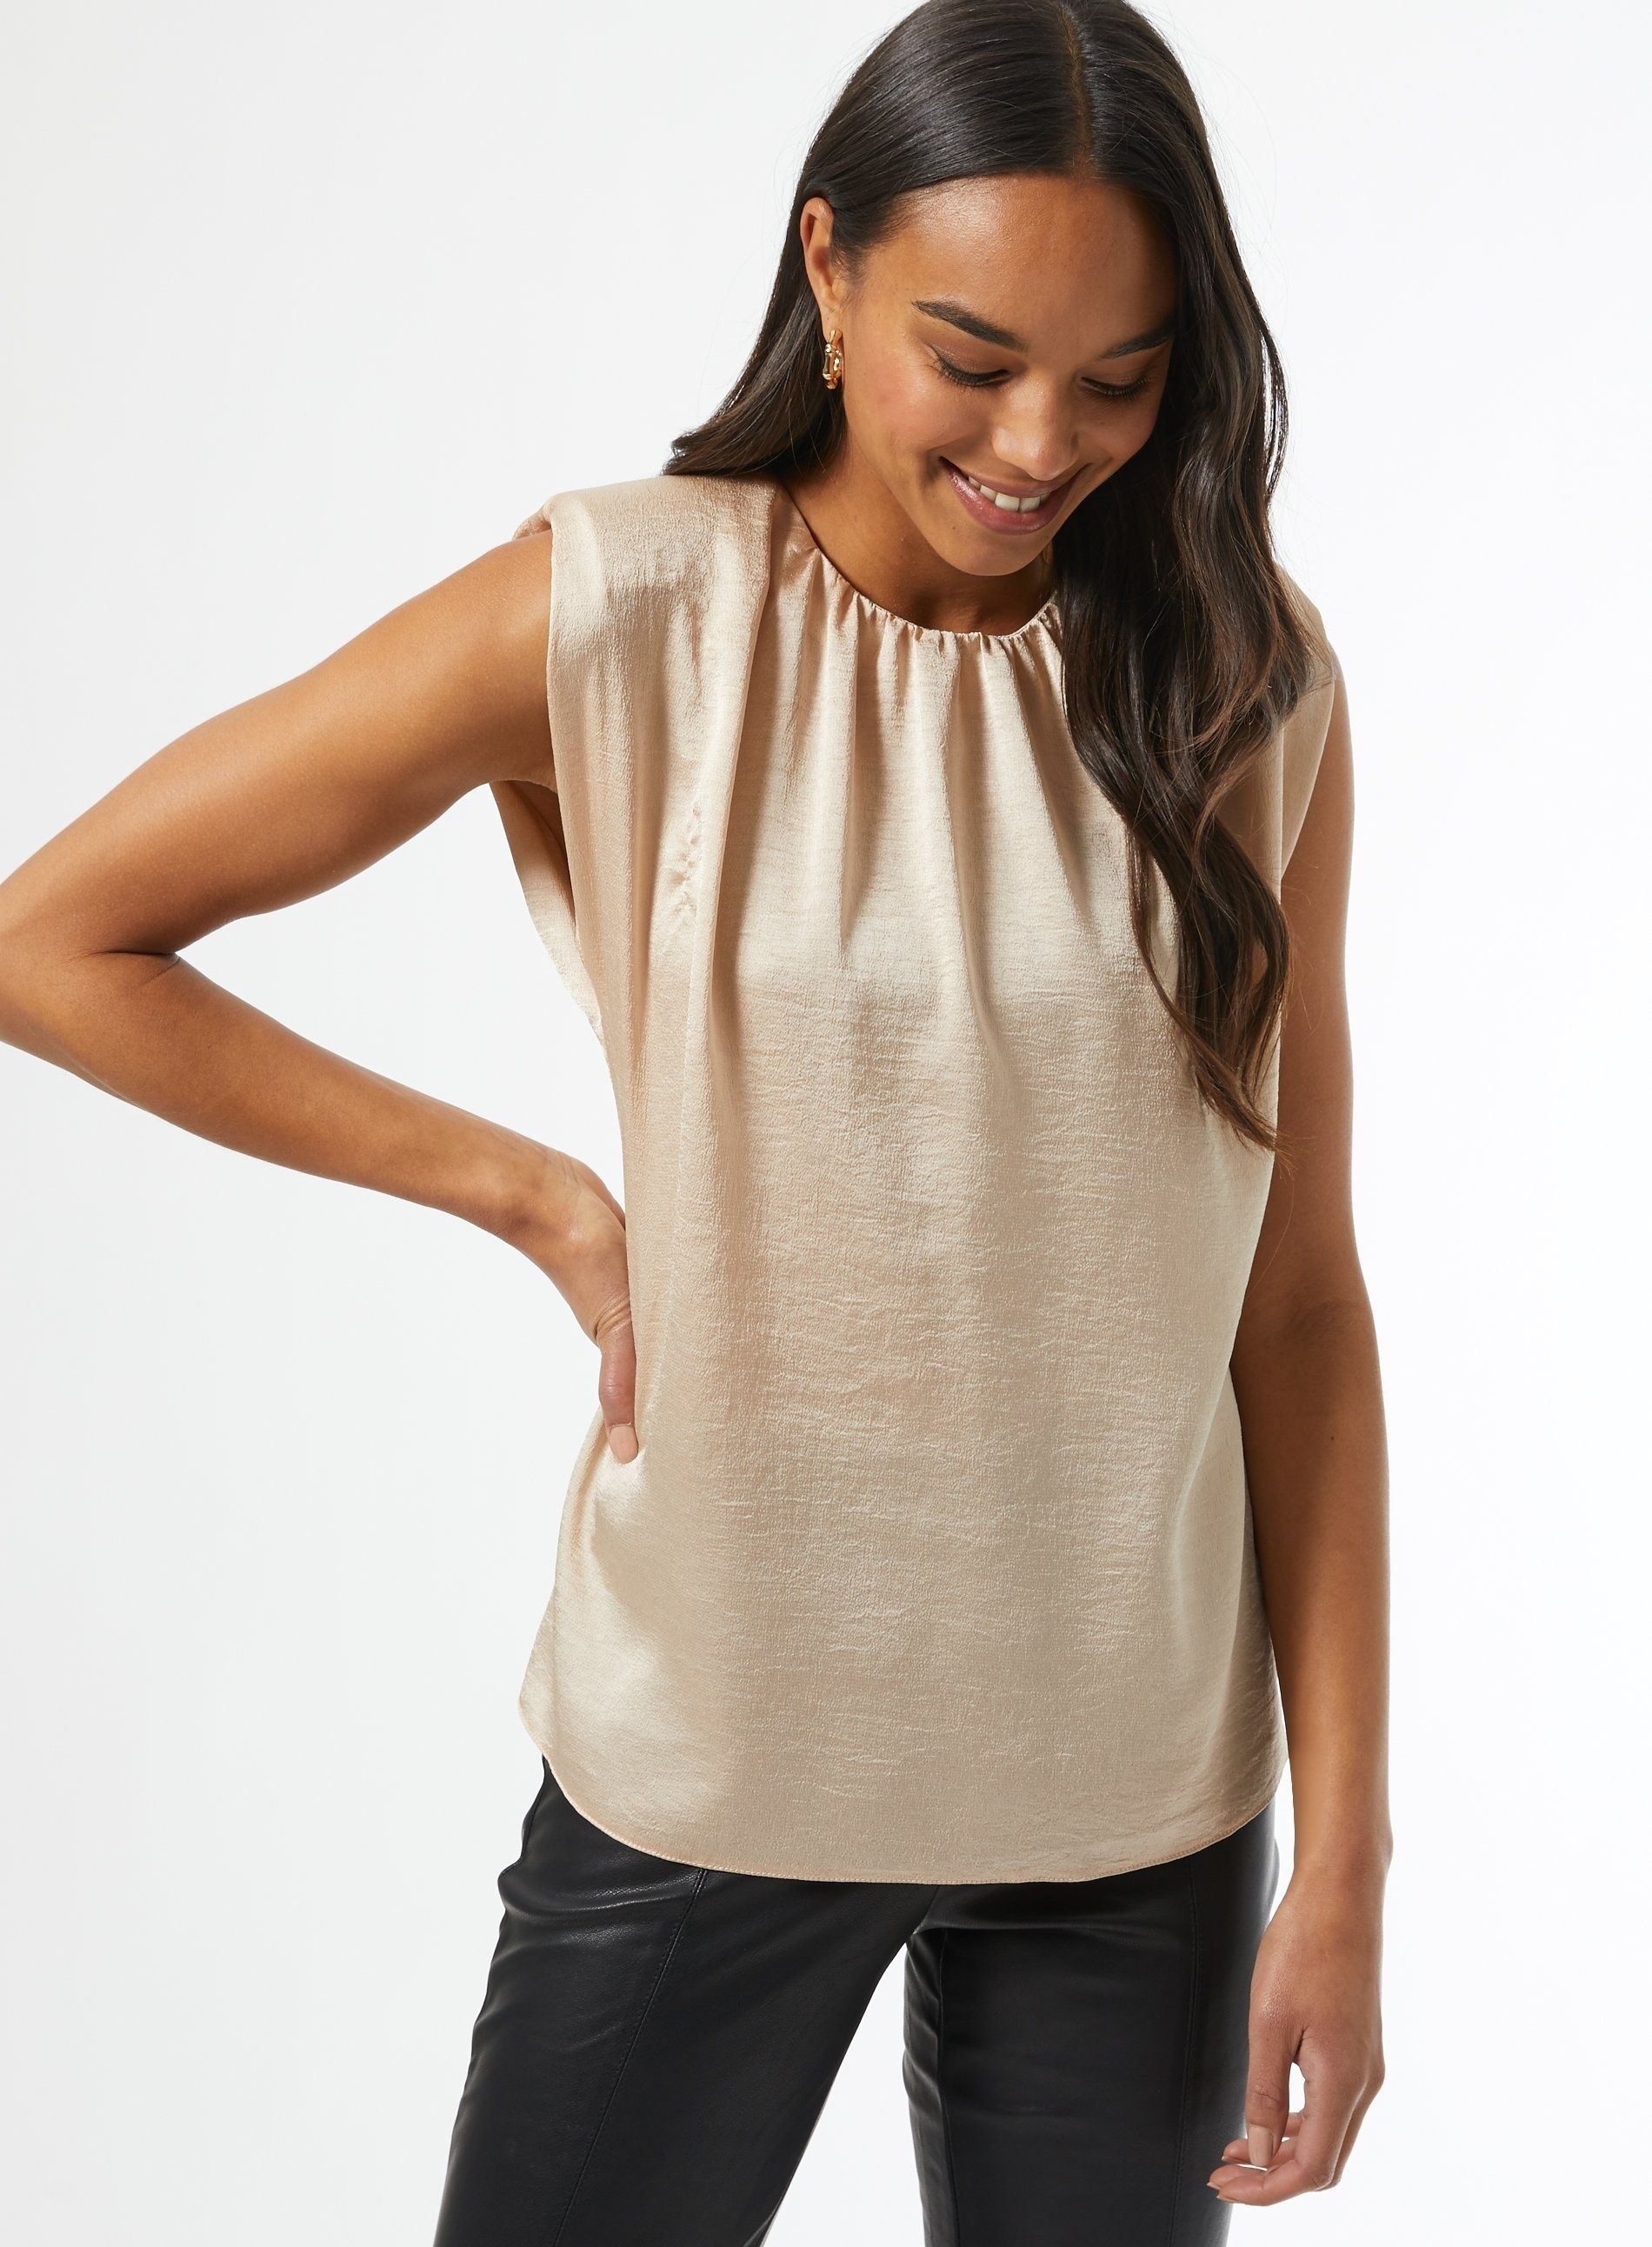 Dorothy Perkins Womens Champagne Shoulder Pad Blouse Sleeveless Party Top